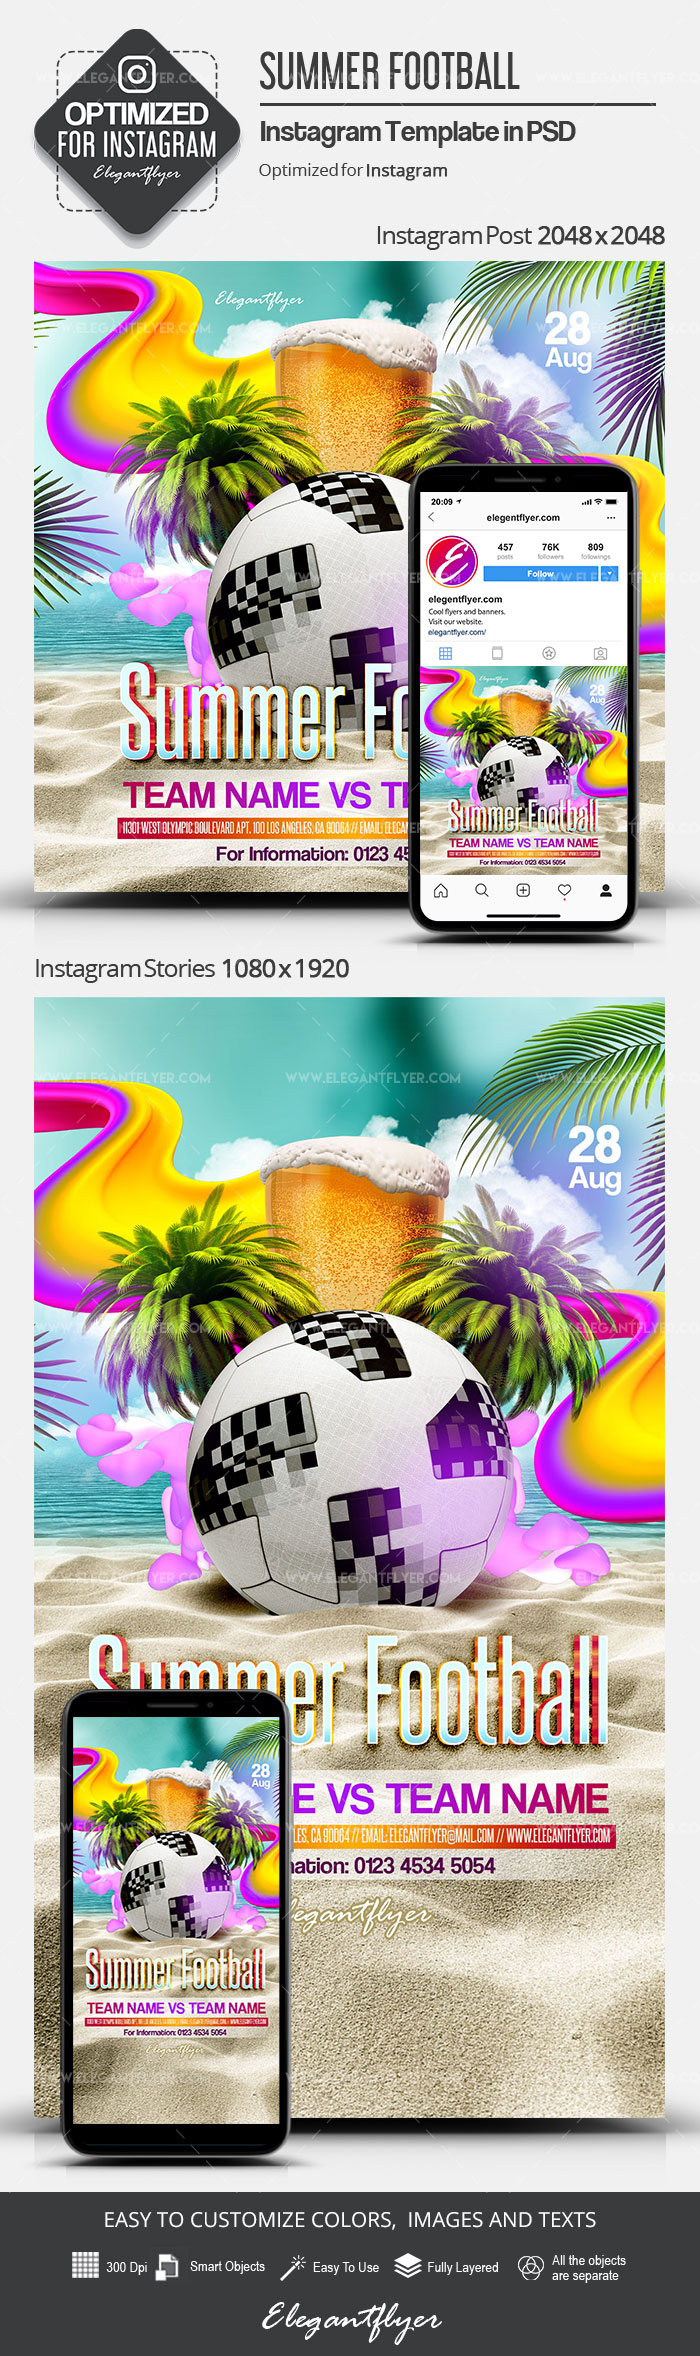 Summer Football – Instagram Stories Template in PSD + Post Templates